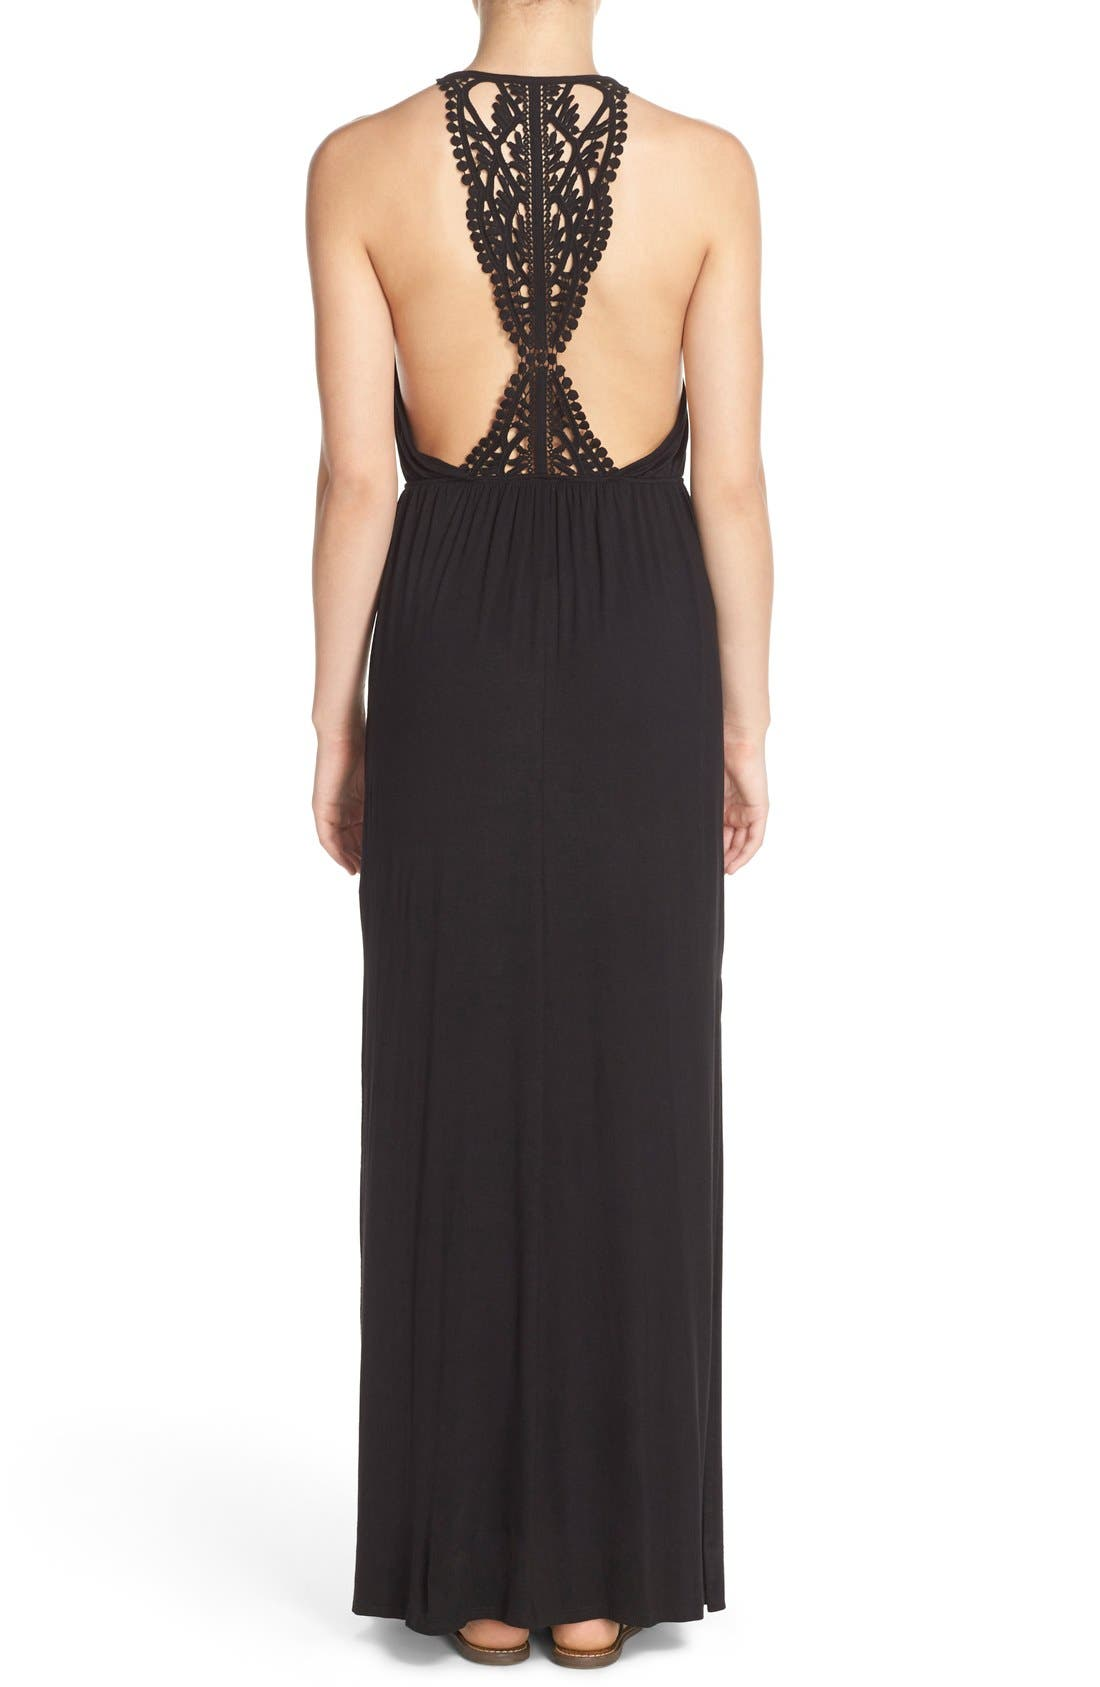 Alternate Image 1 Selected - Surf Gypsy Crochet Back Jersey Cover-Up Maxi Dress